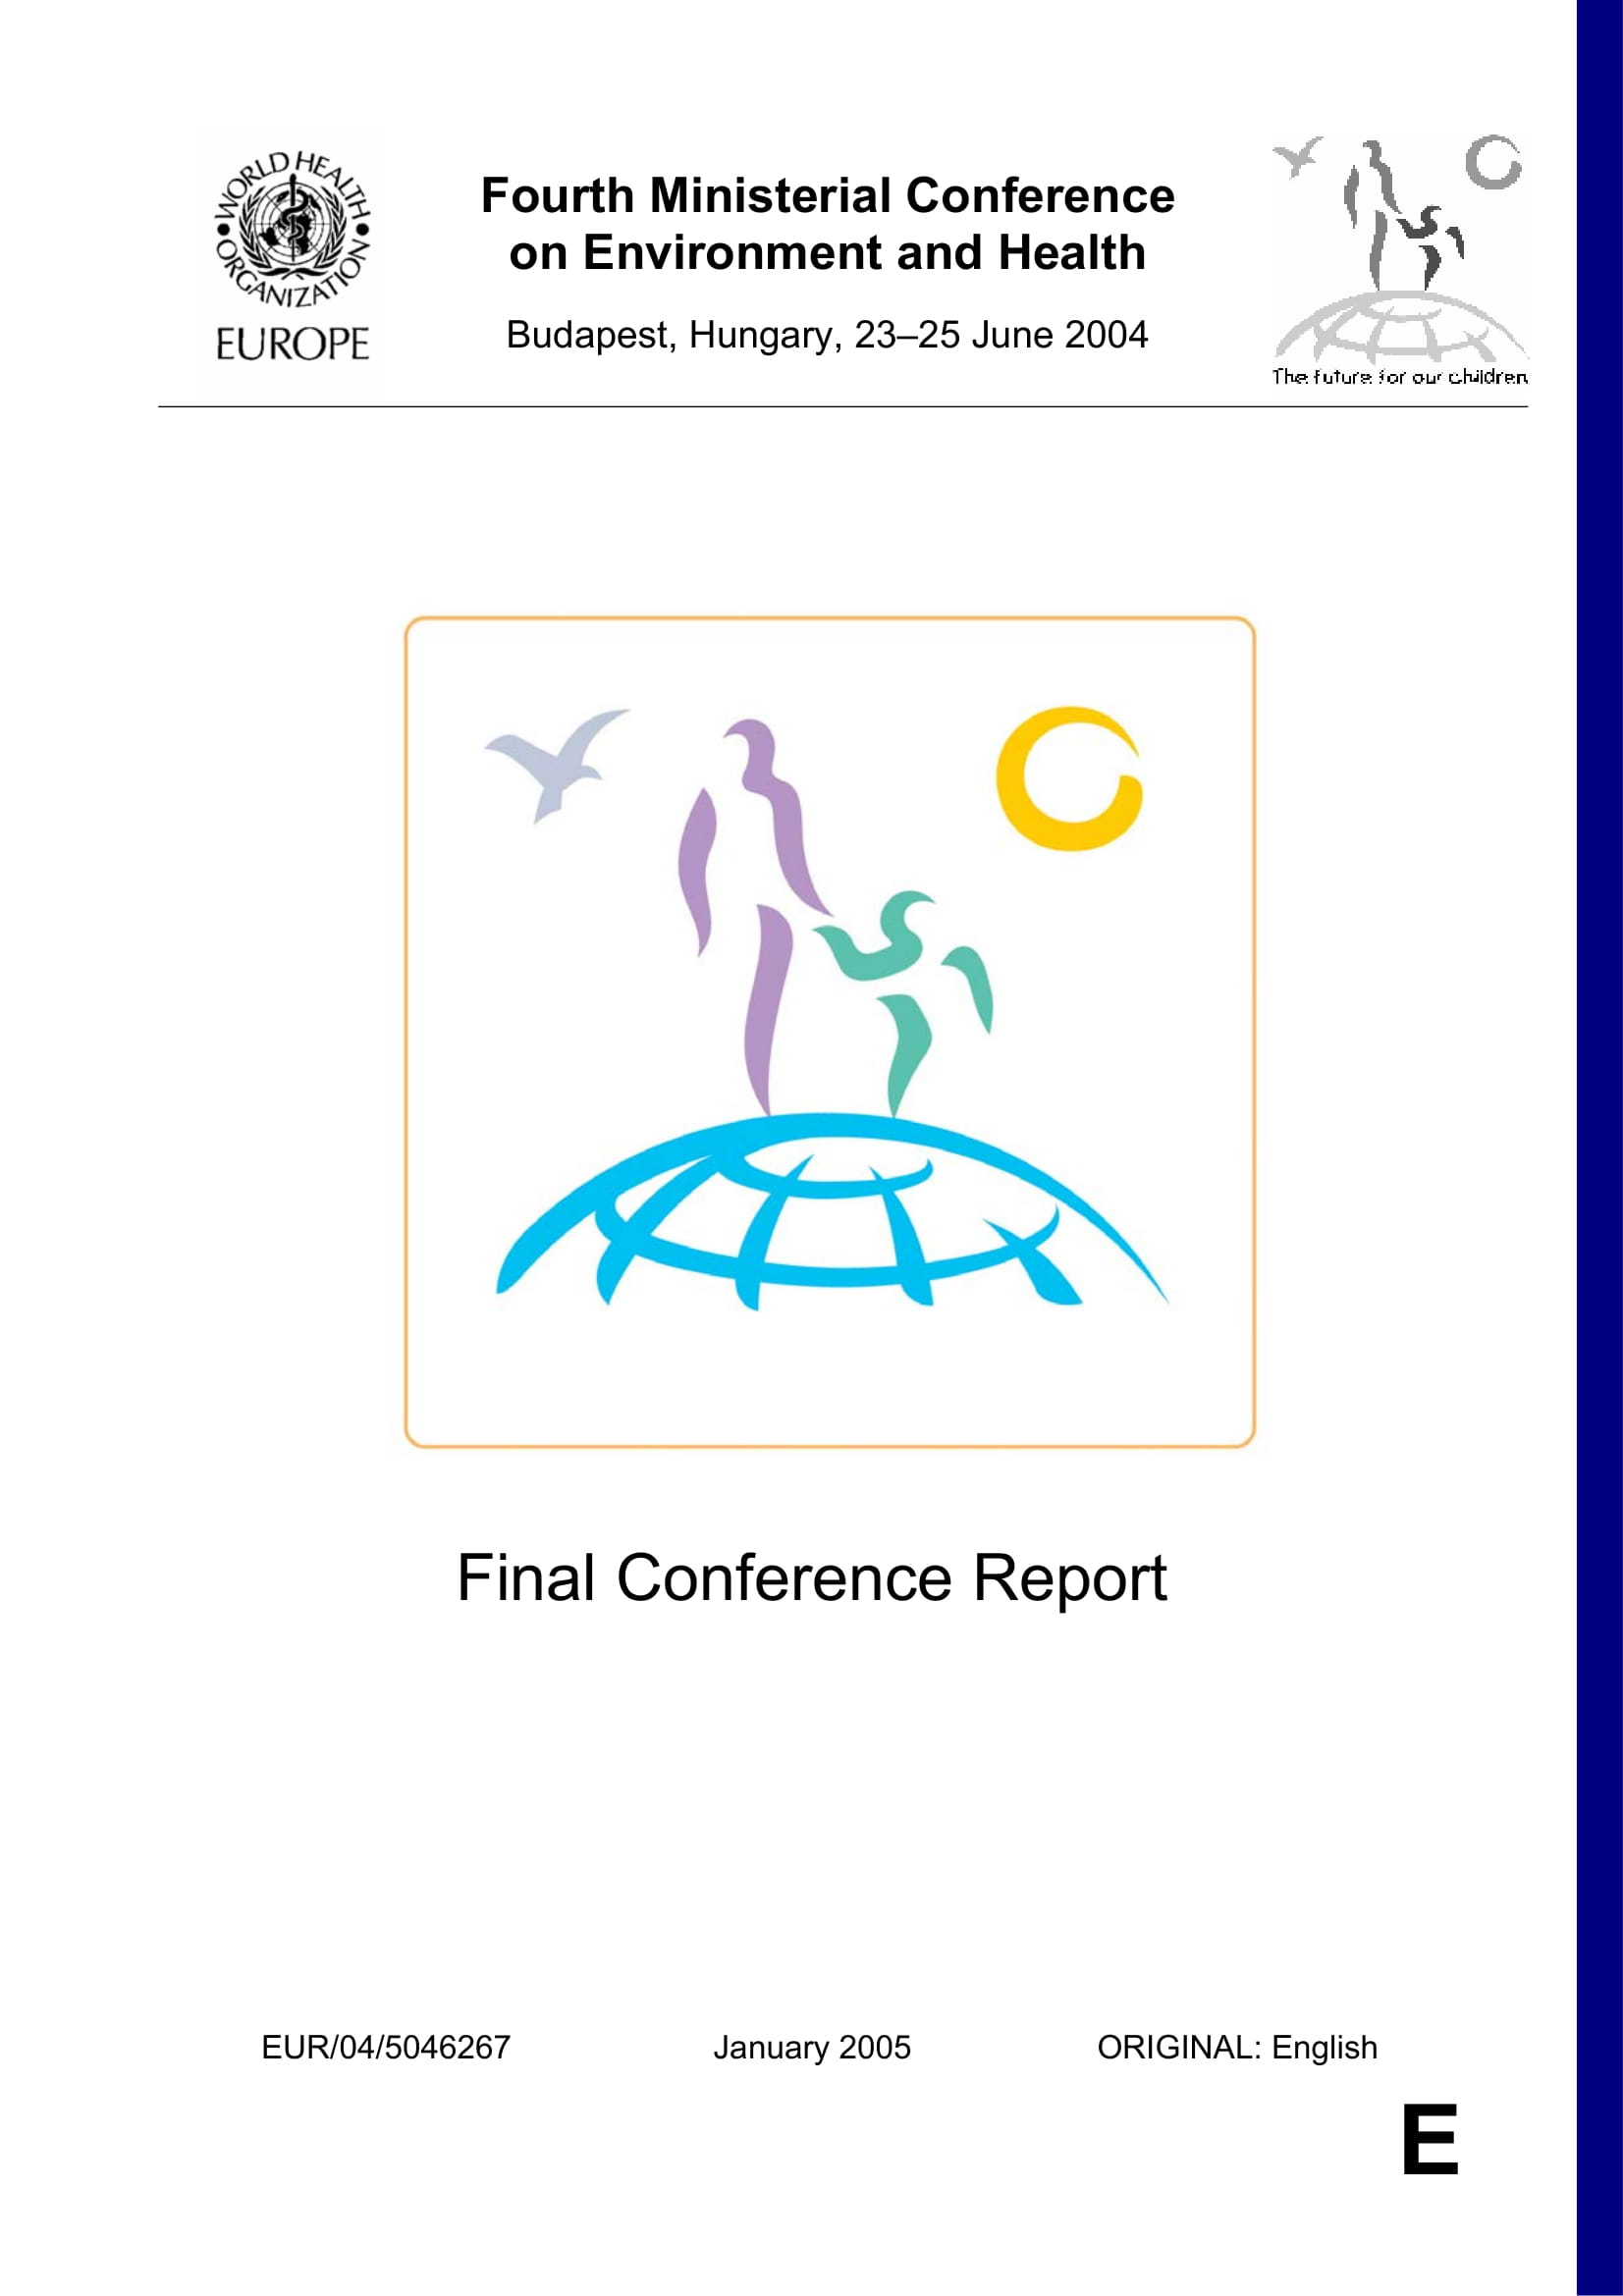 environment and health conference report example